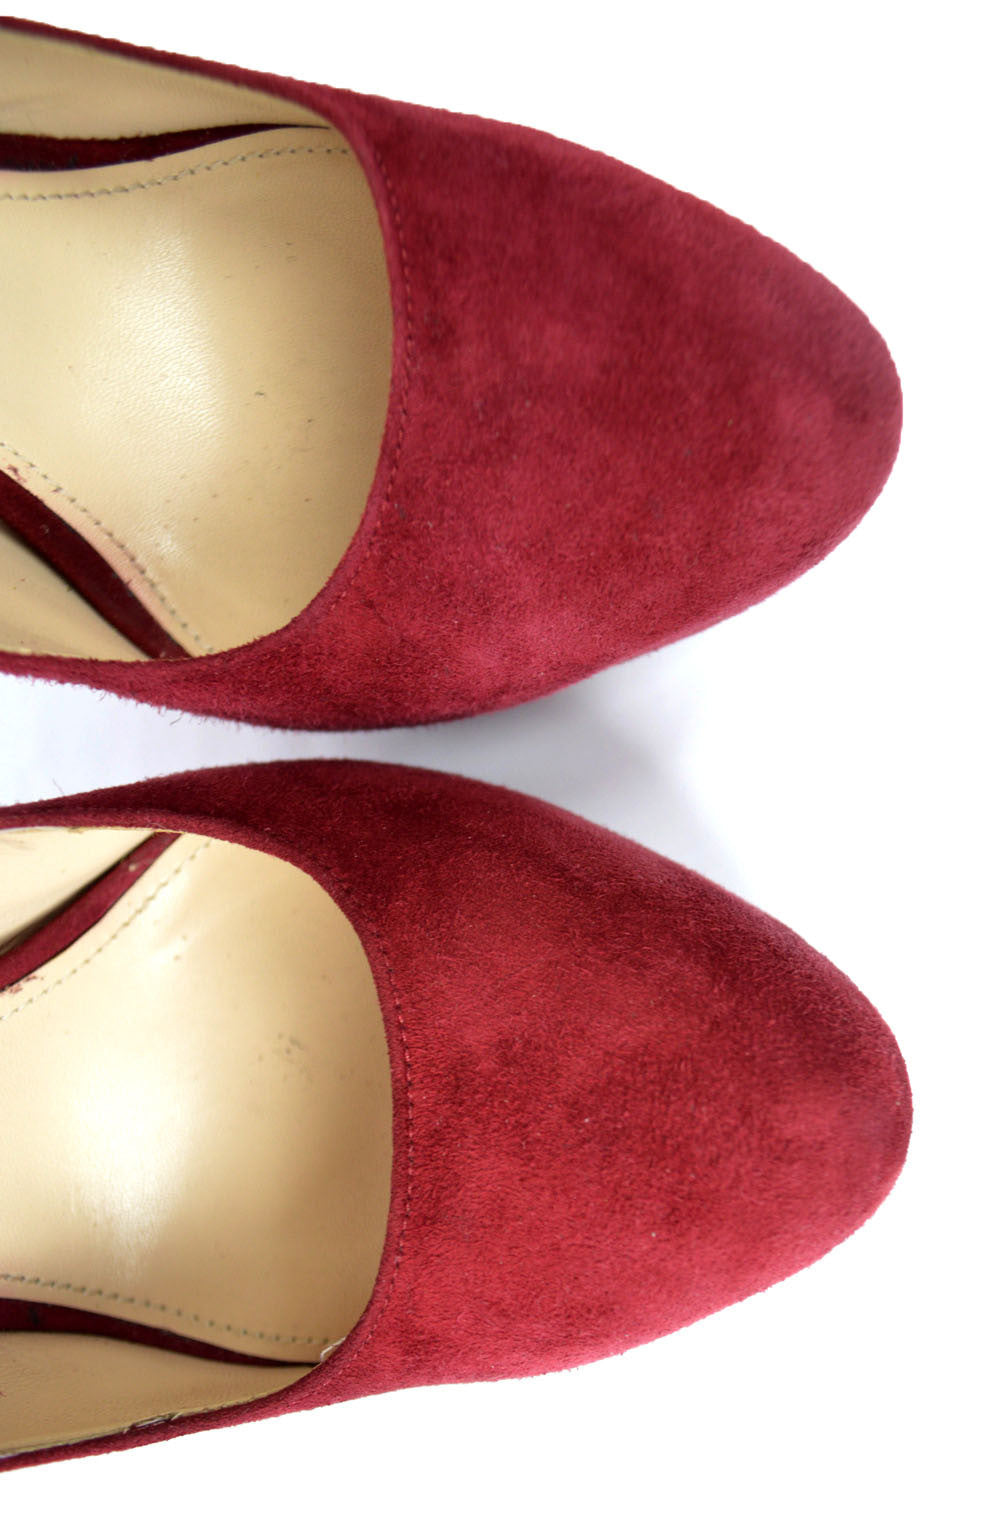 Cherry Red Suede Mary Jane Pumps